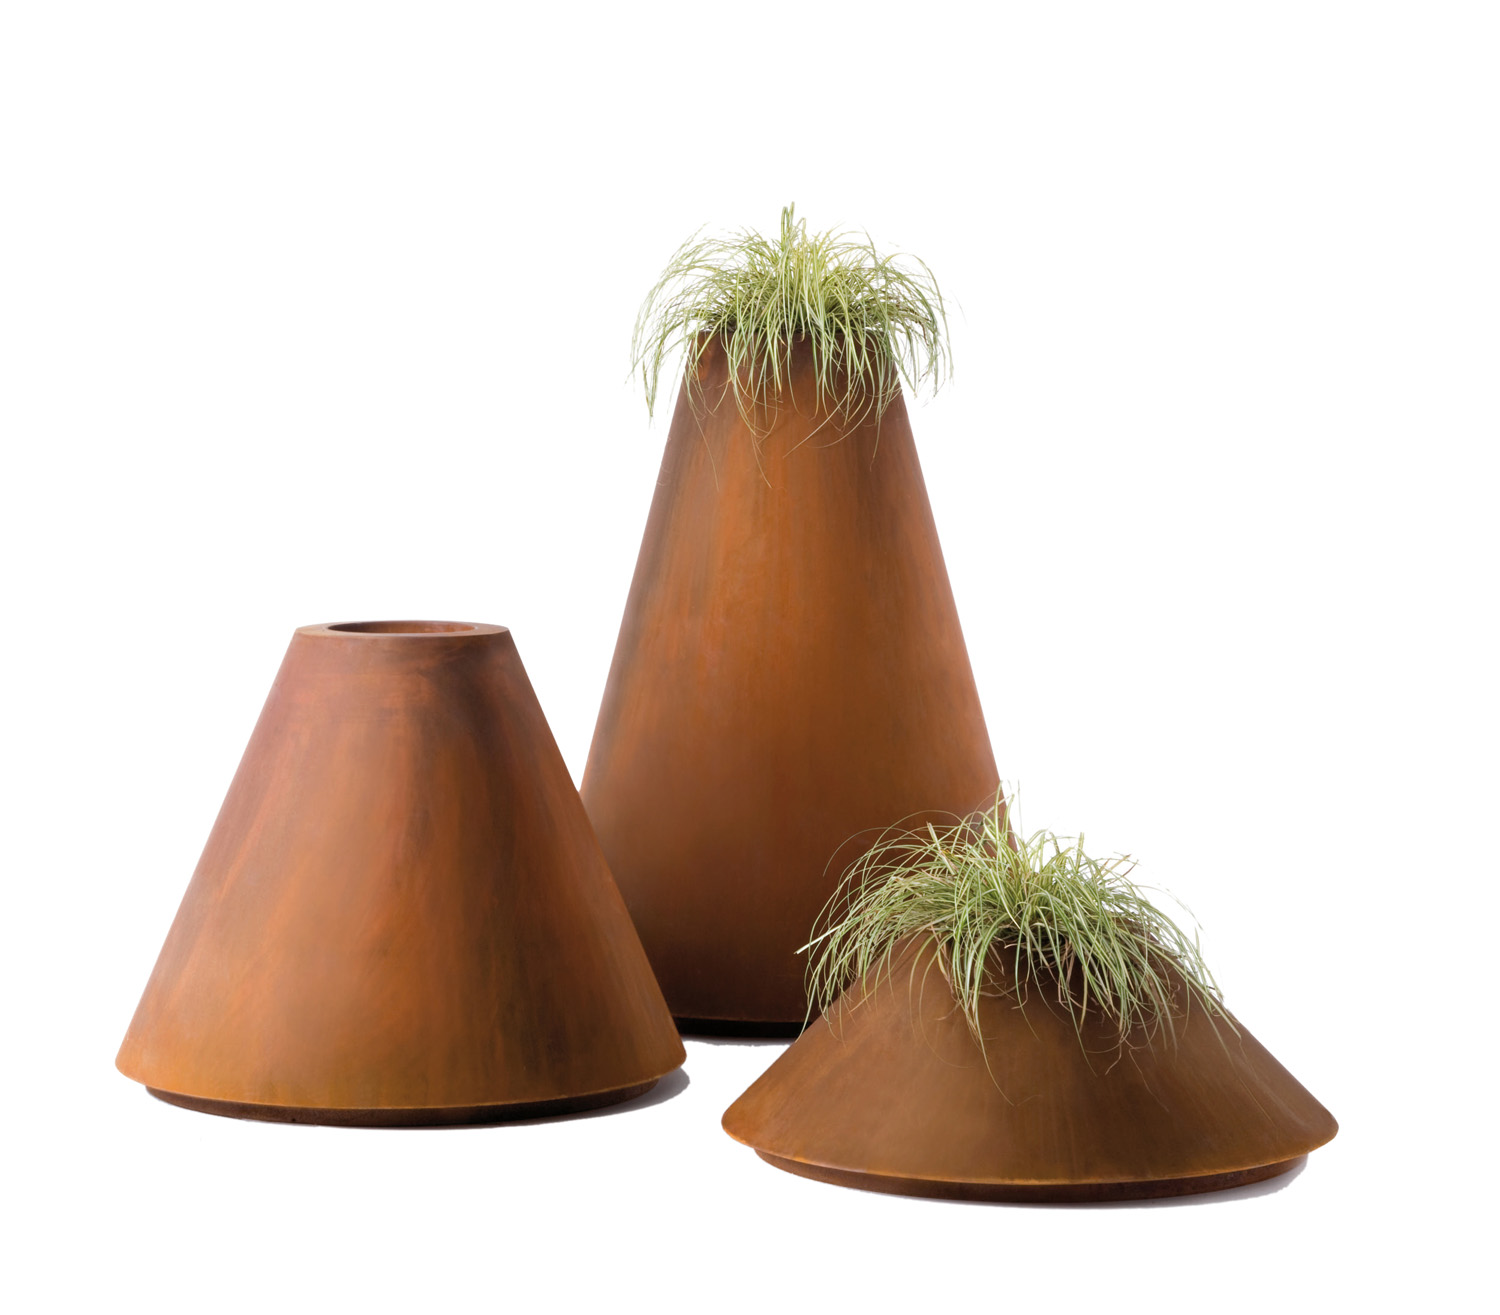 DeCastelli's Conique planters (three sizes) from Homeware Gallery www.hgfs.com.au